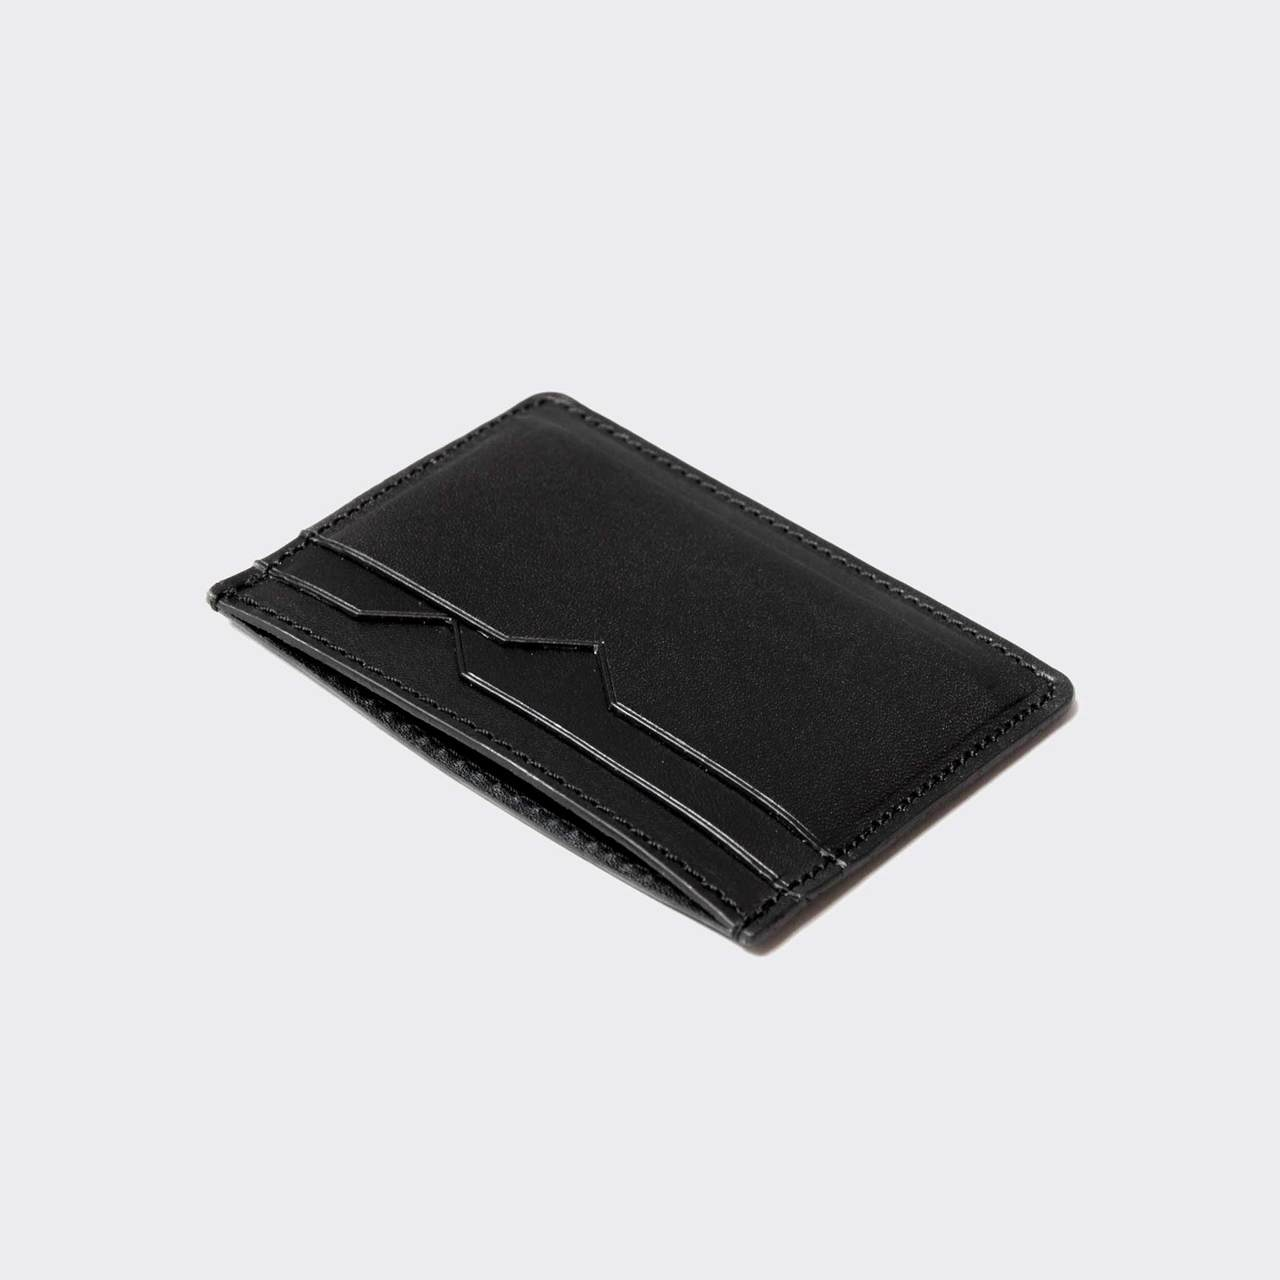 Vere Verto - Fio Wallet - Black, available at LCD